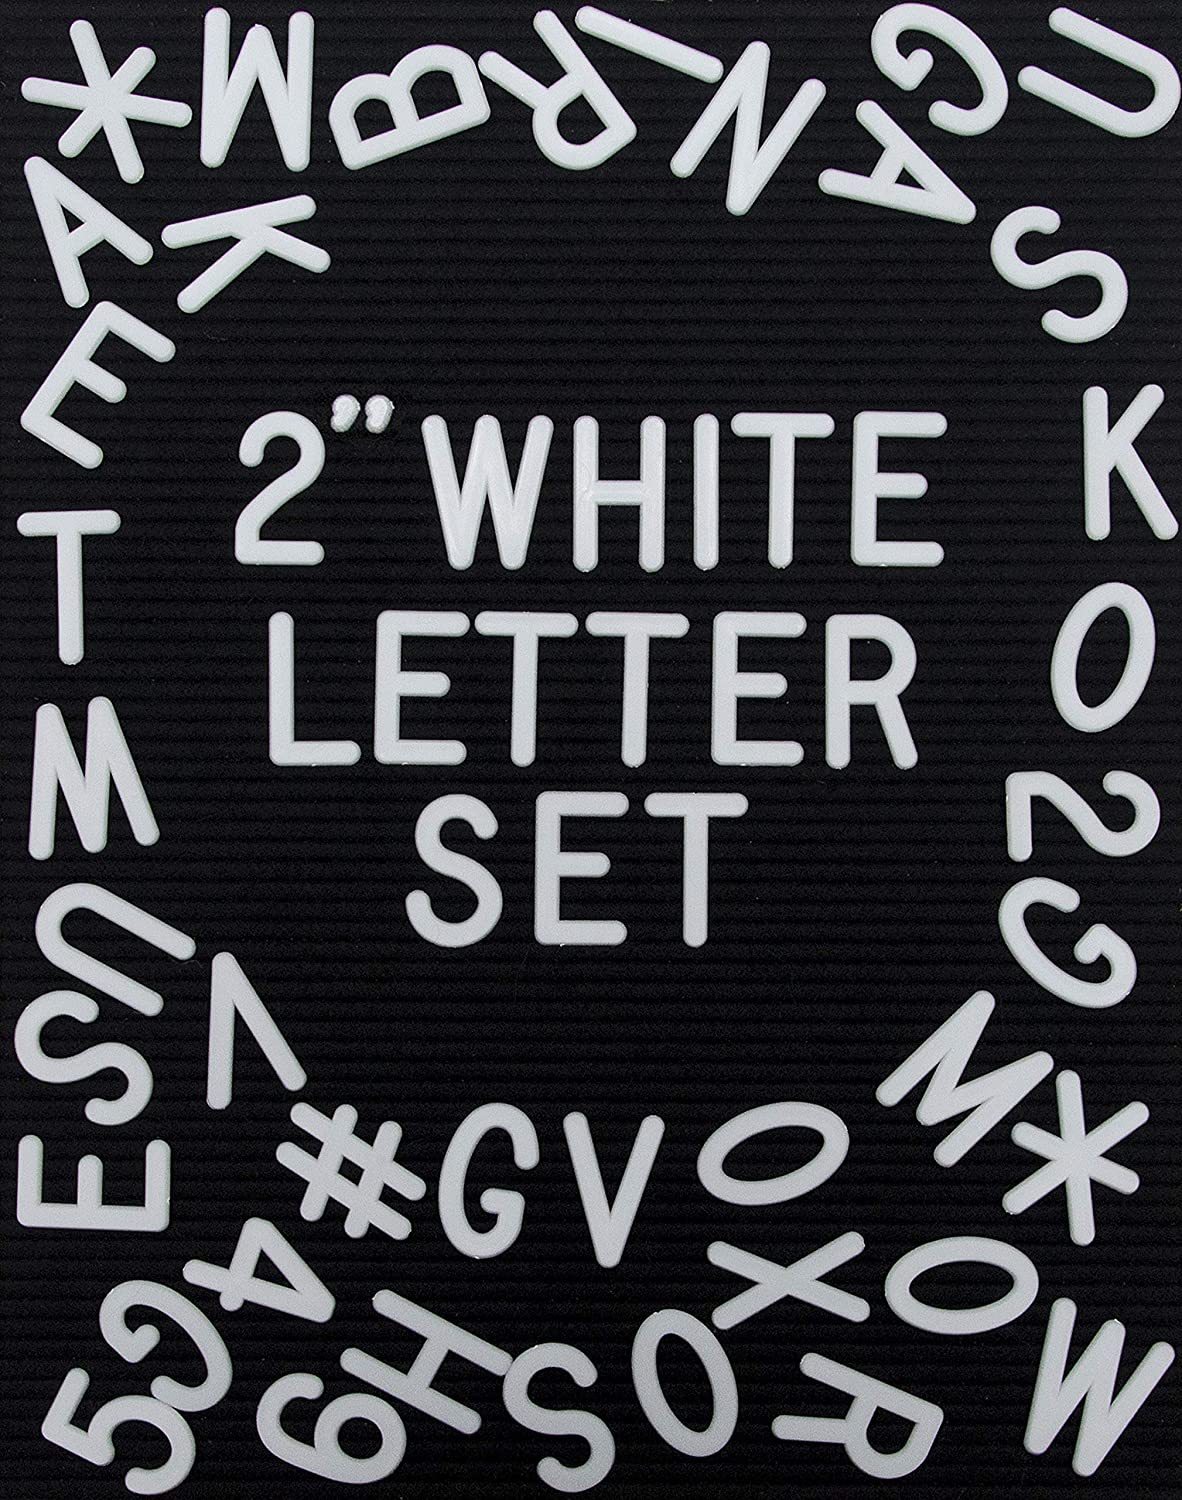 White Plastic Letter Set for Changeable Felt Letter Boards. 2 Inch Letters, Set of 326 Characters by Felt Like Sharing